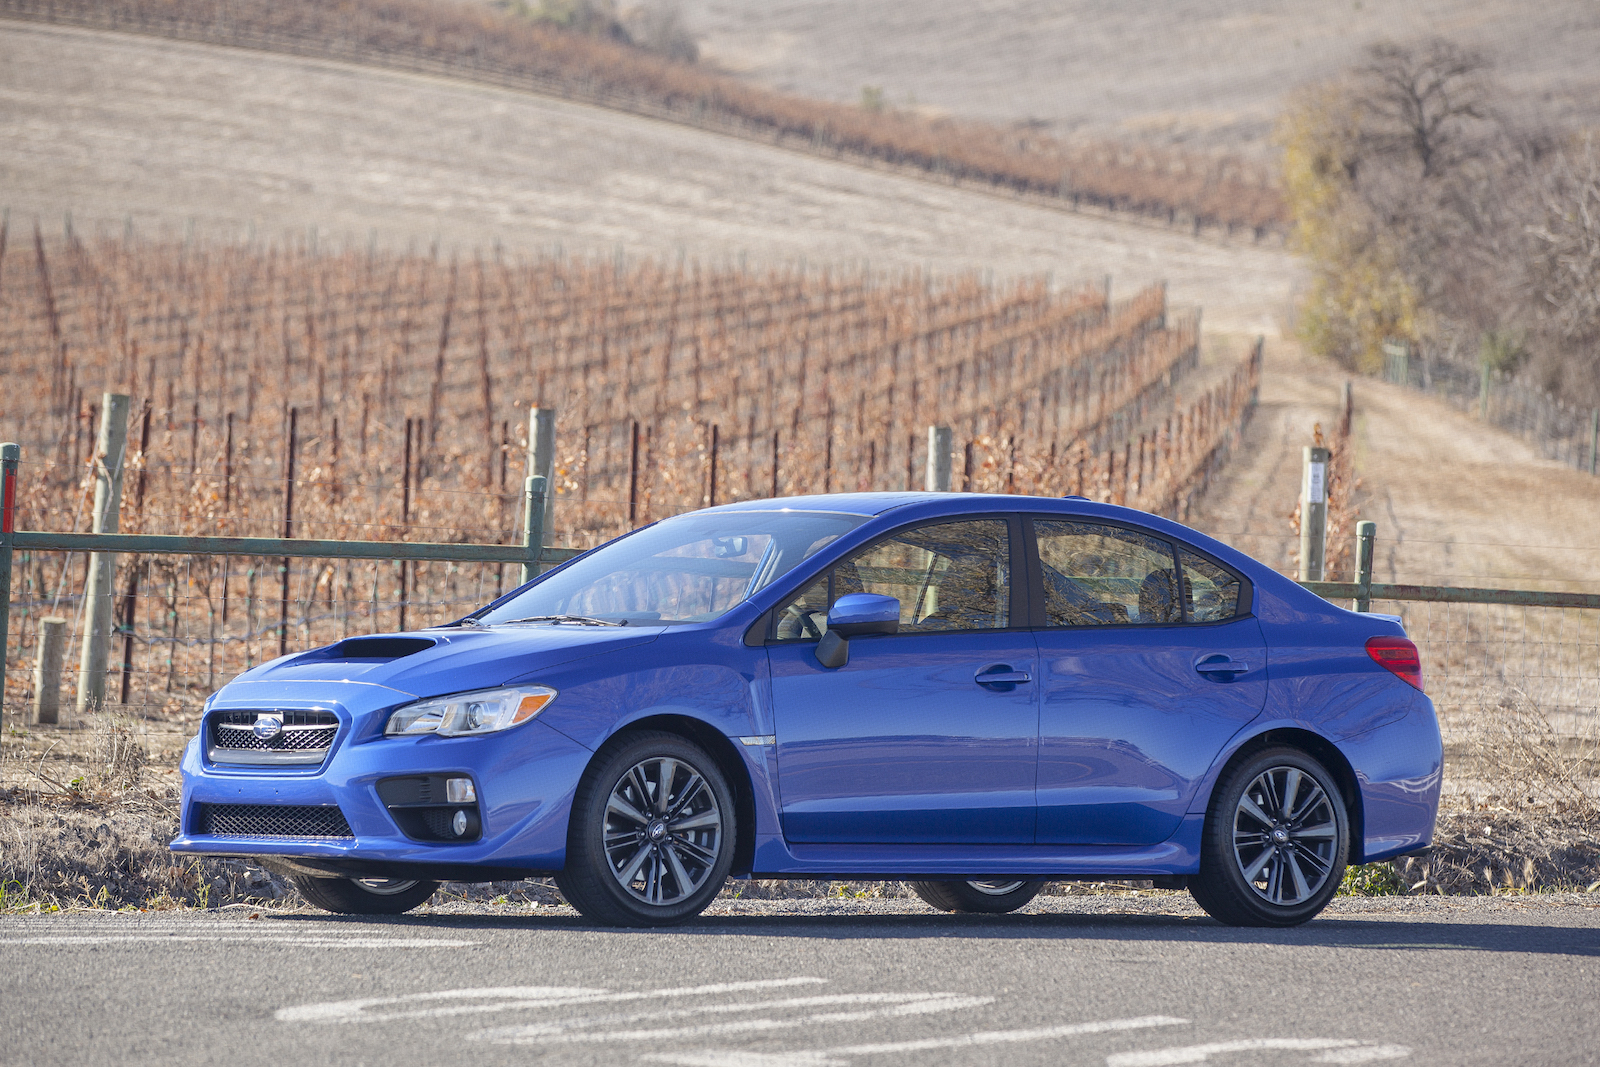 Wrx Vs Gti >> 2015 Volkswagen Gti Vs 2015 Subaru Wrx Head To Head Video